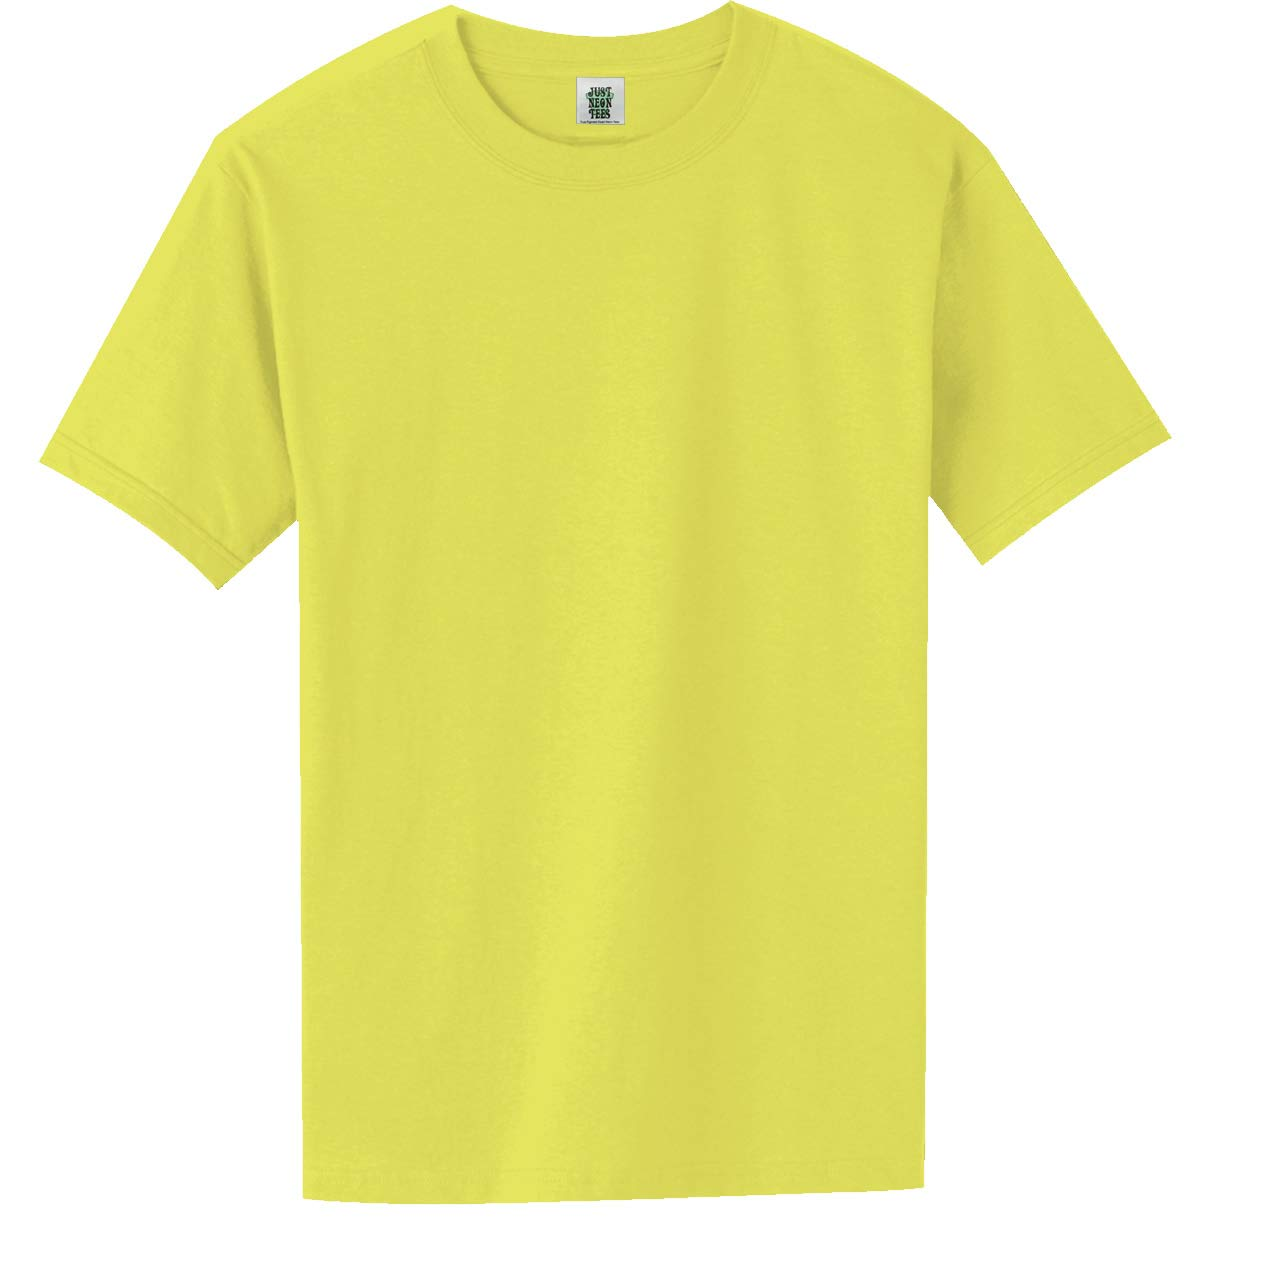 52e0b8a0b2af Short Sleeve Bright Neon T-Shirt in 6 Bright Colors | Amazon.com